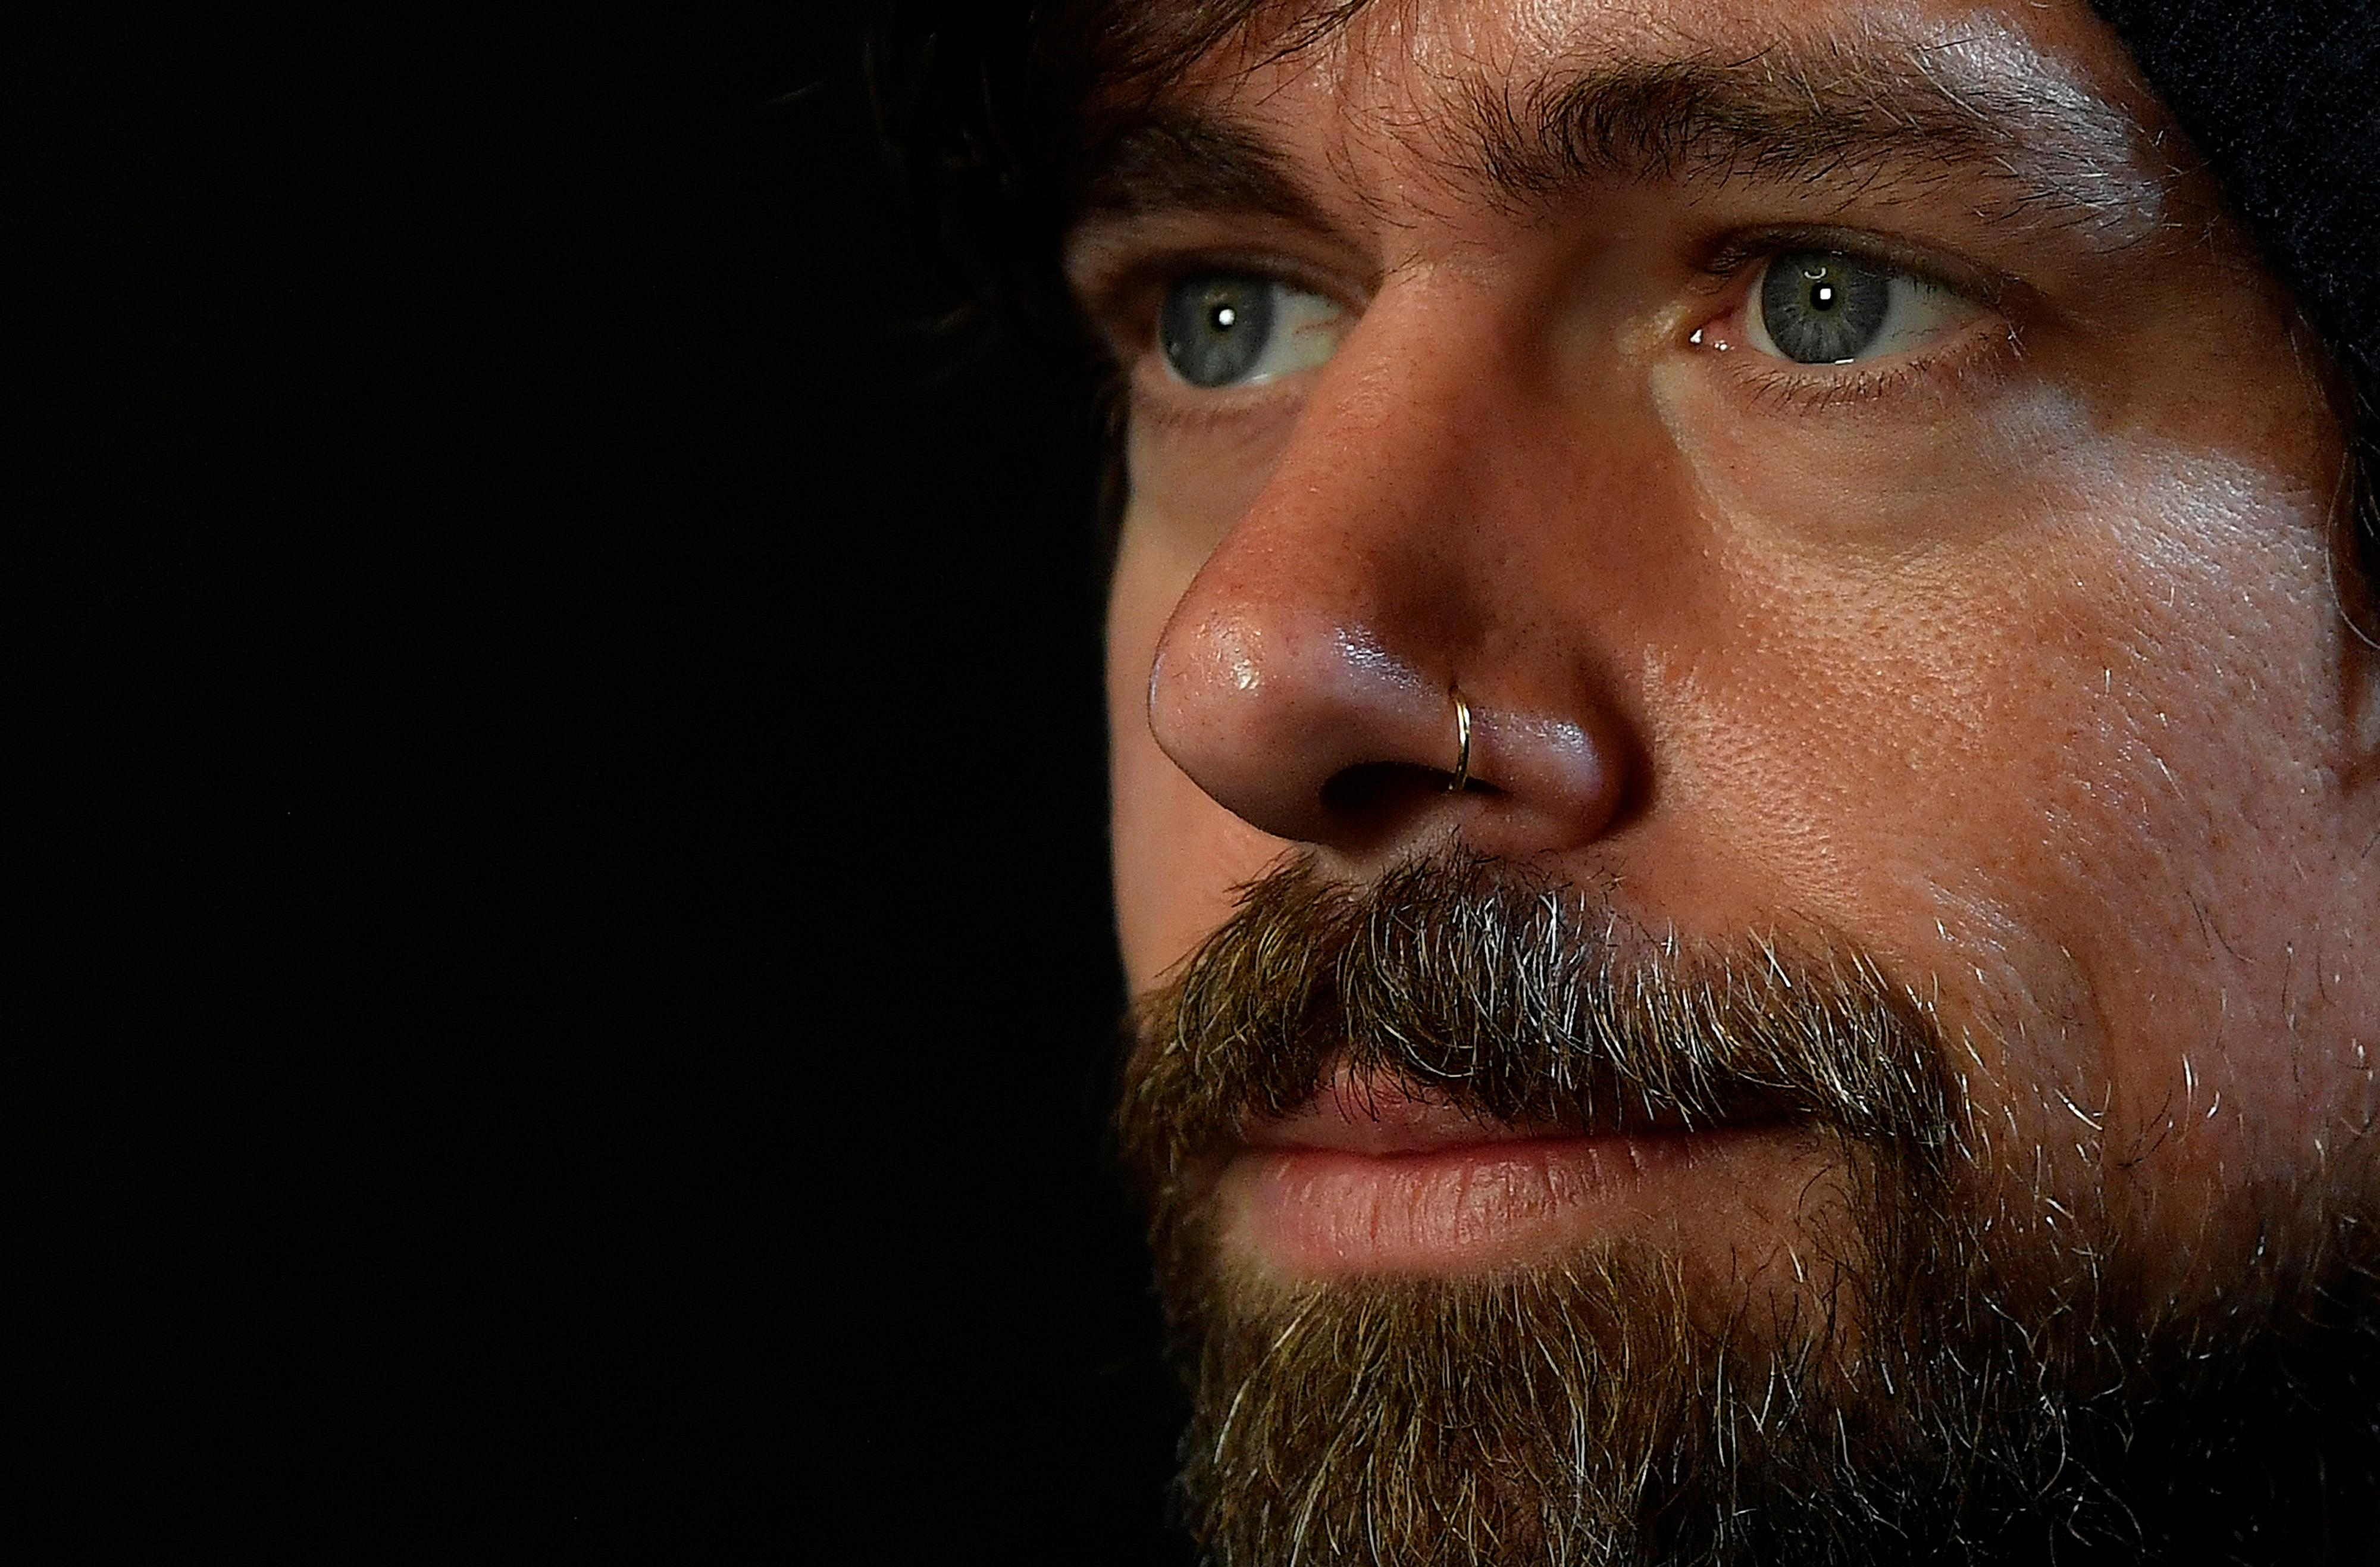 Jack Dorsey The Enigmatic Ceo Who Could Save Or Break Western Democracy